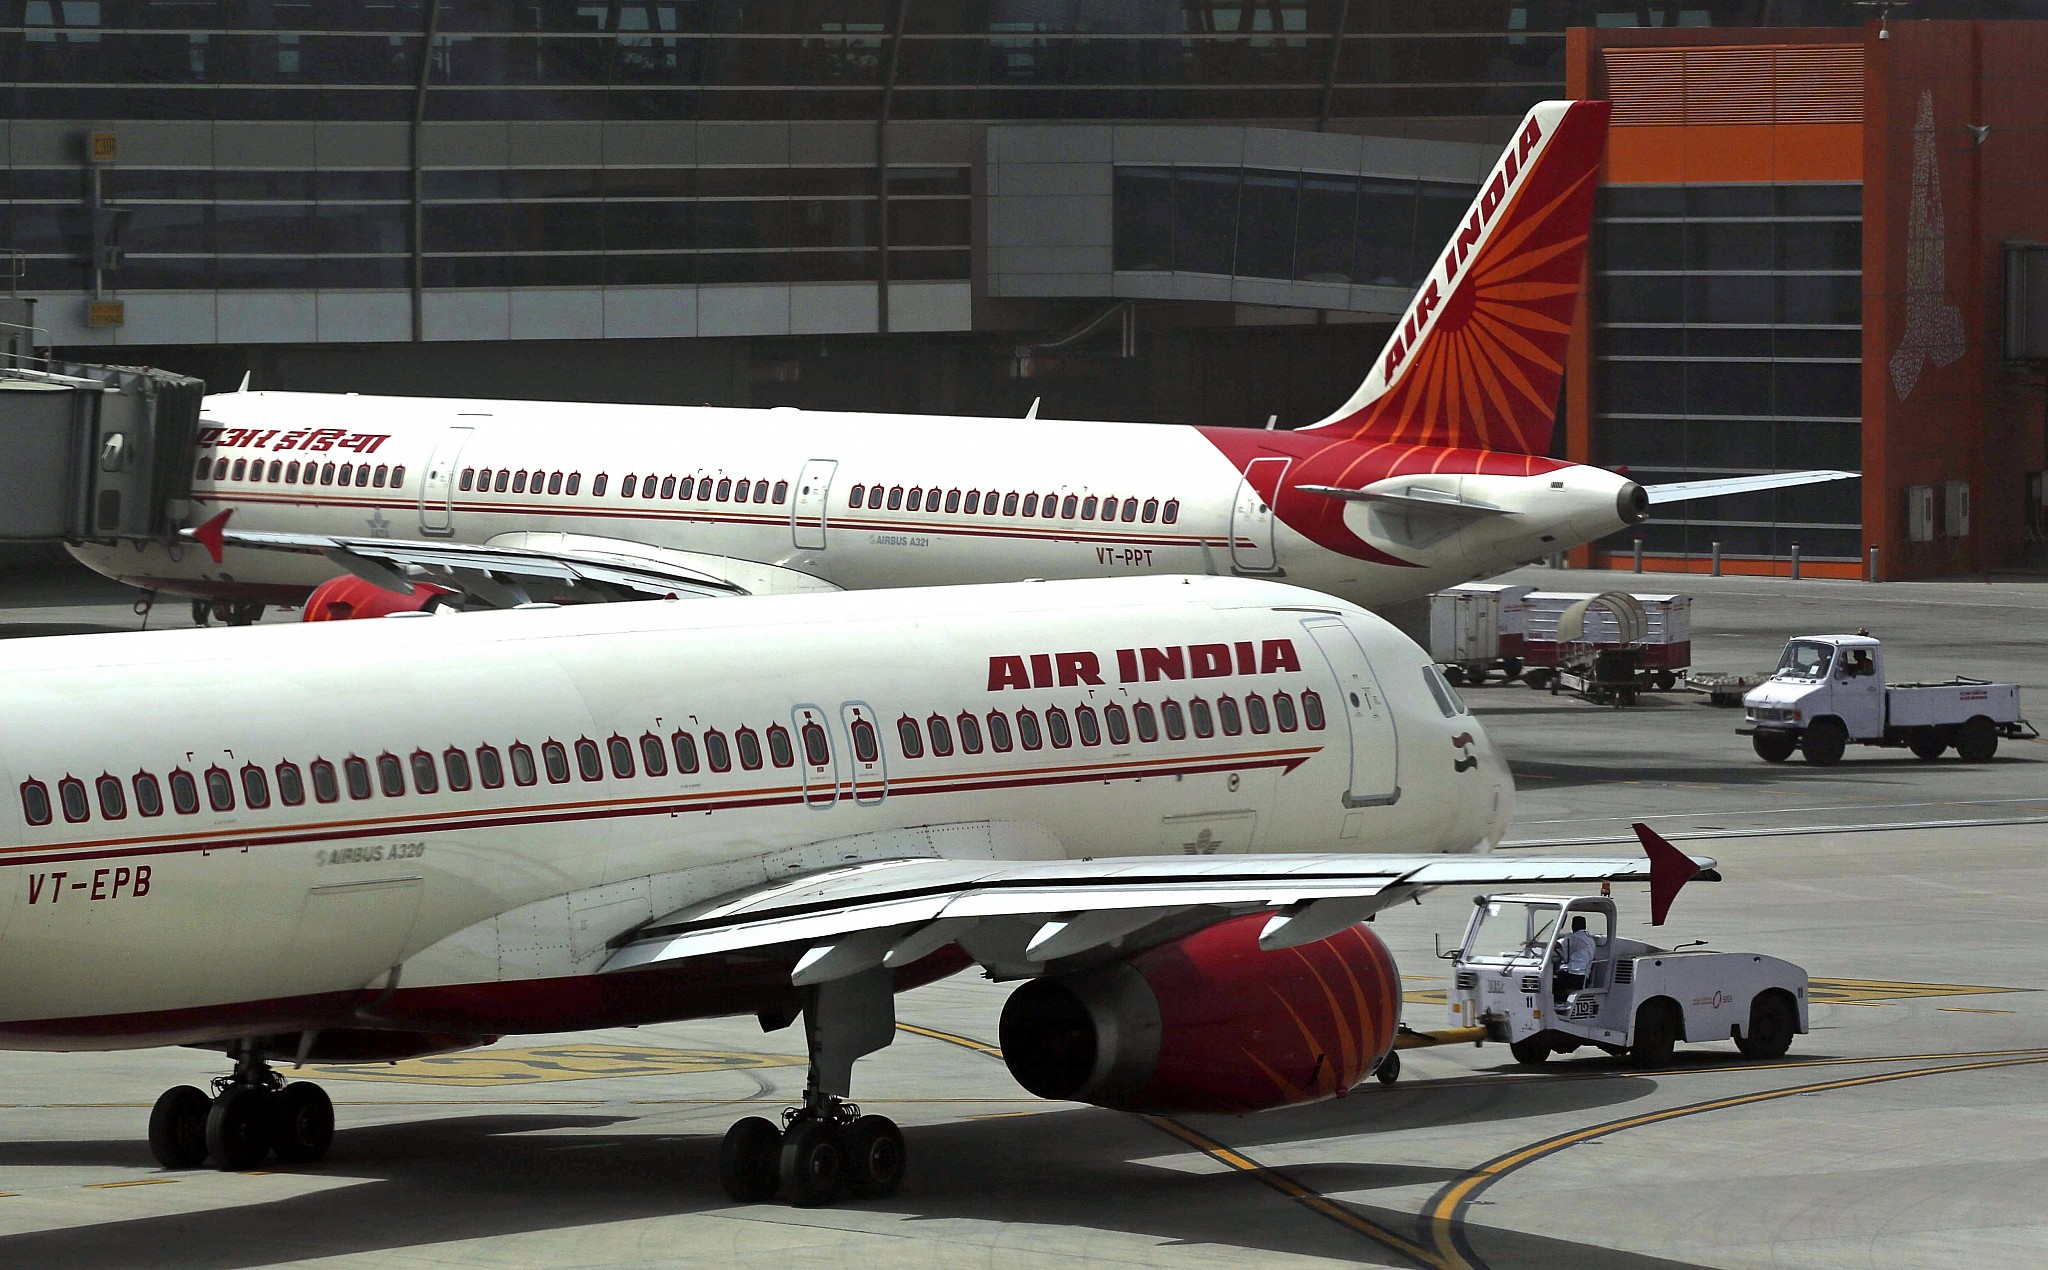 Illustrative Air India Planes Parked On The Tarmac At The Indira Gandhi International Airport In